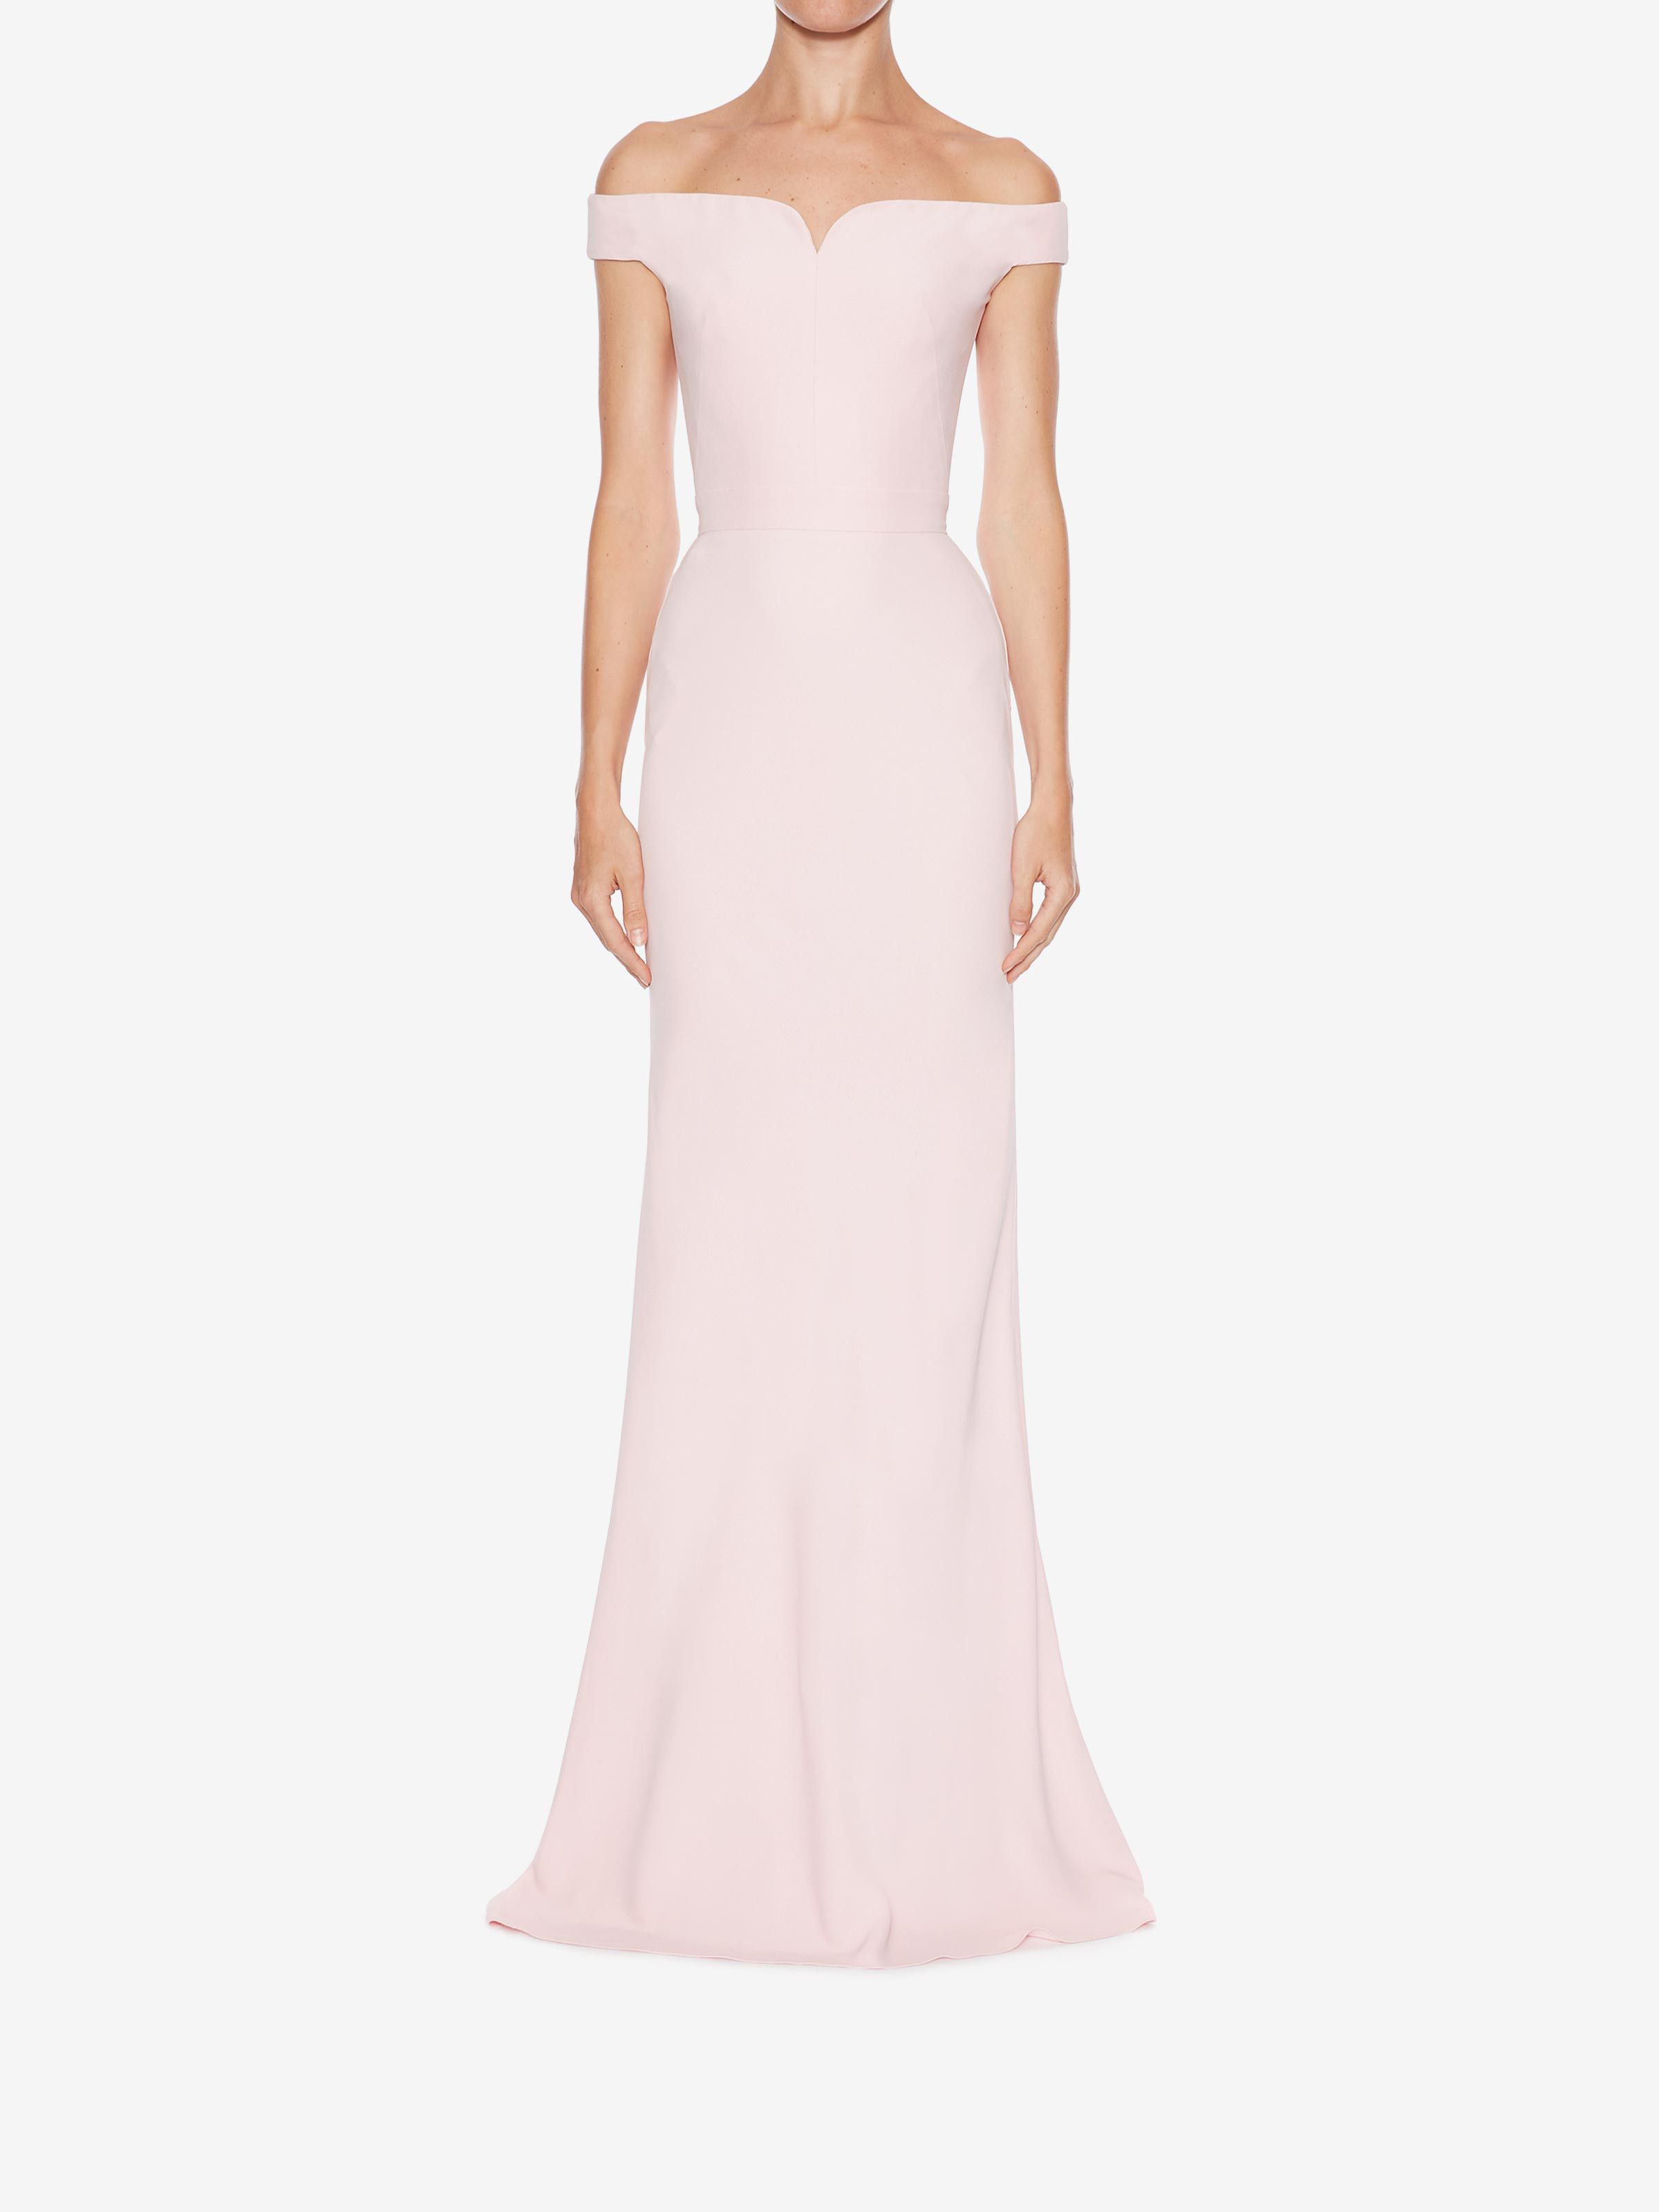 Pink dress in store  Shop Womenus Off The Shoulder Evening Dress from the official online